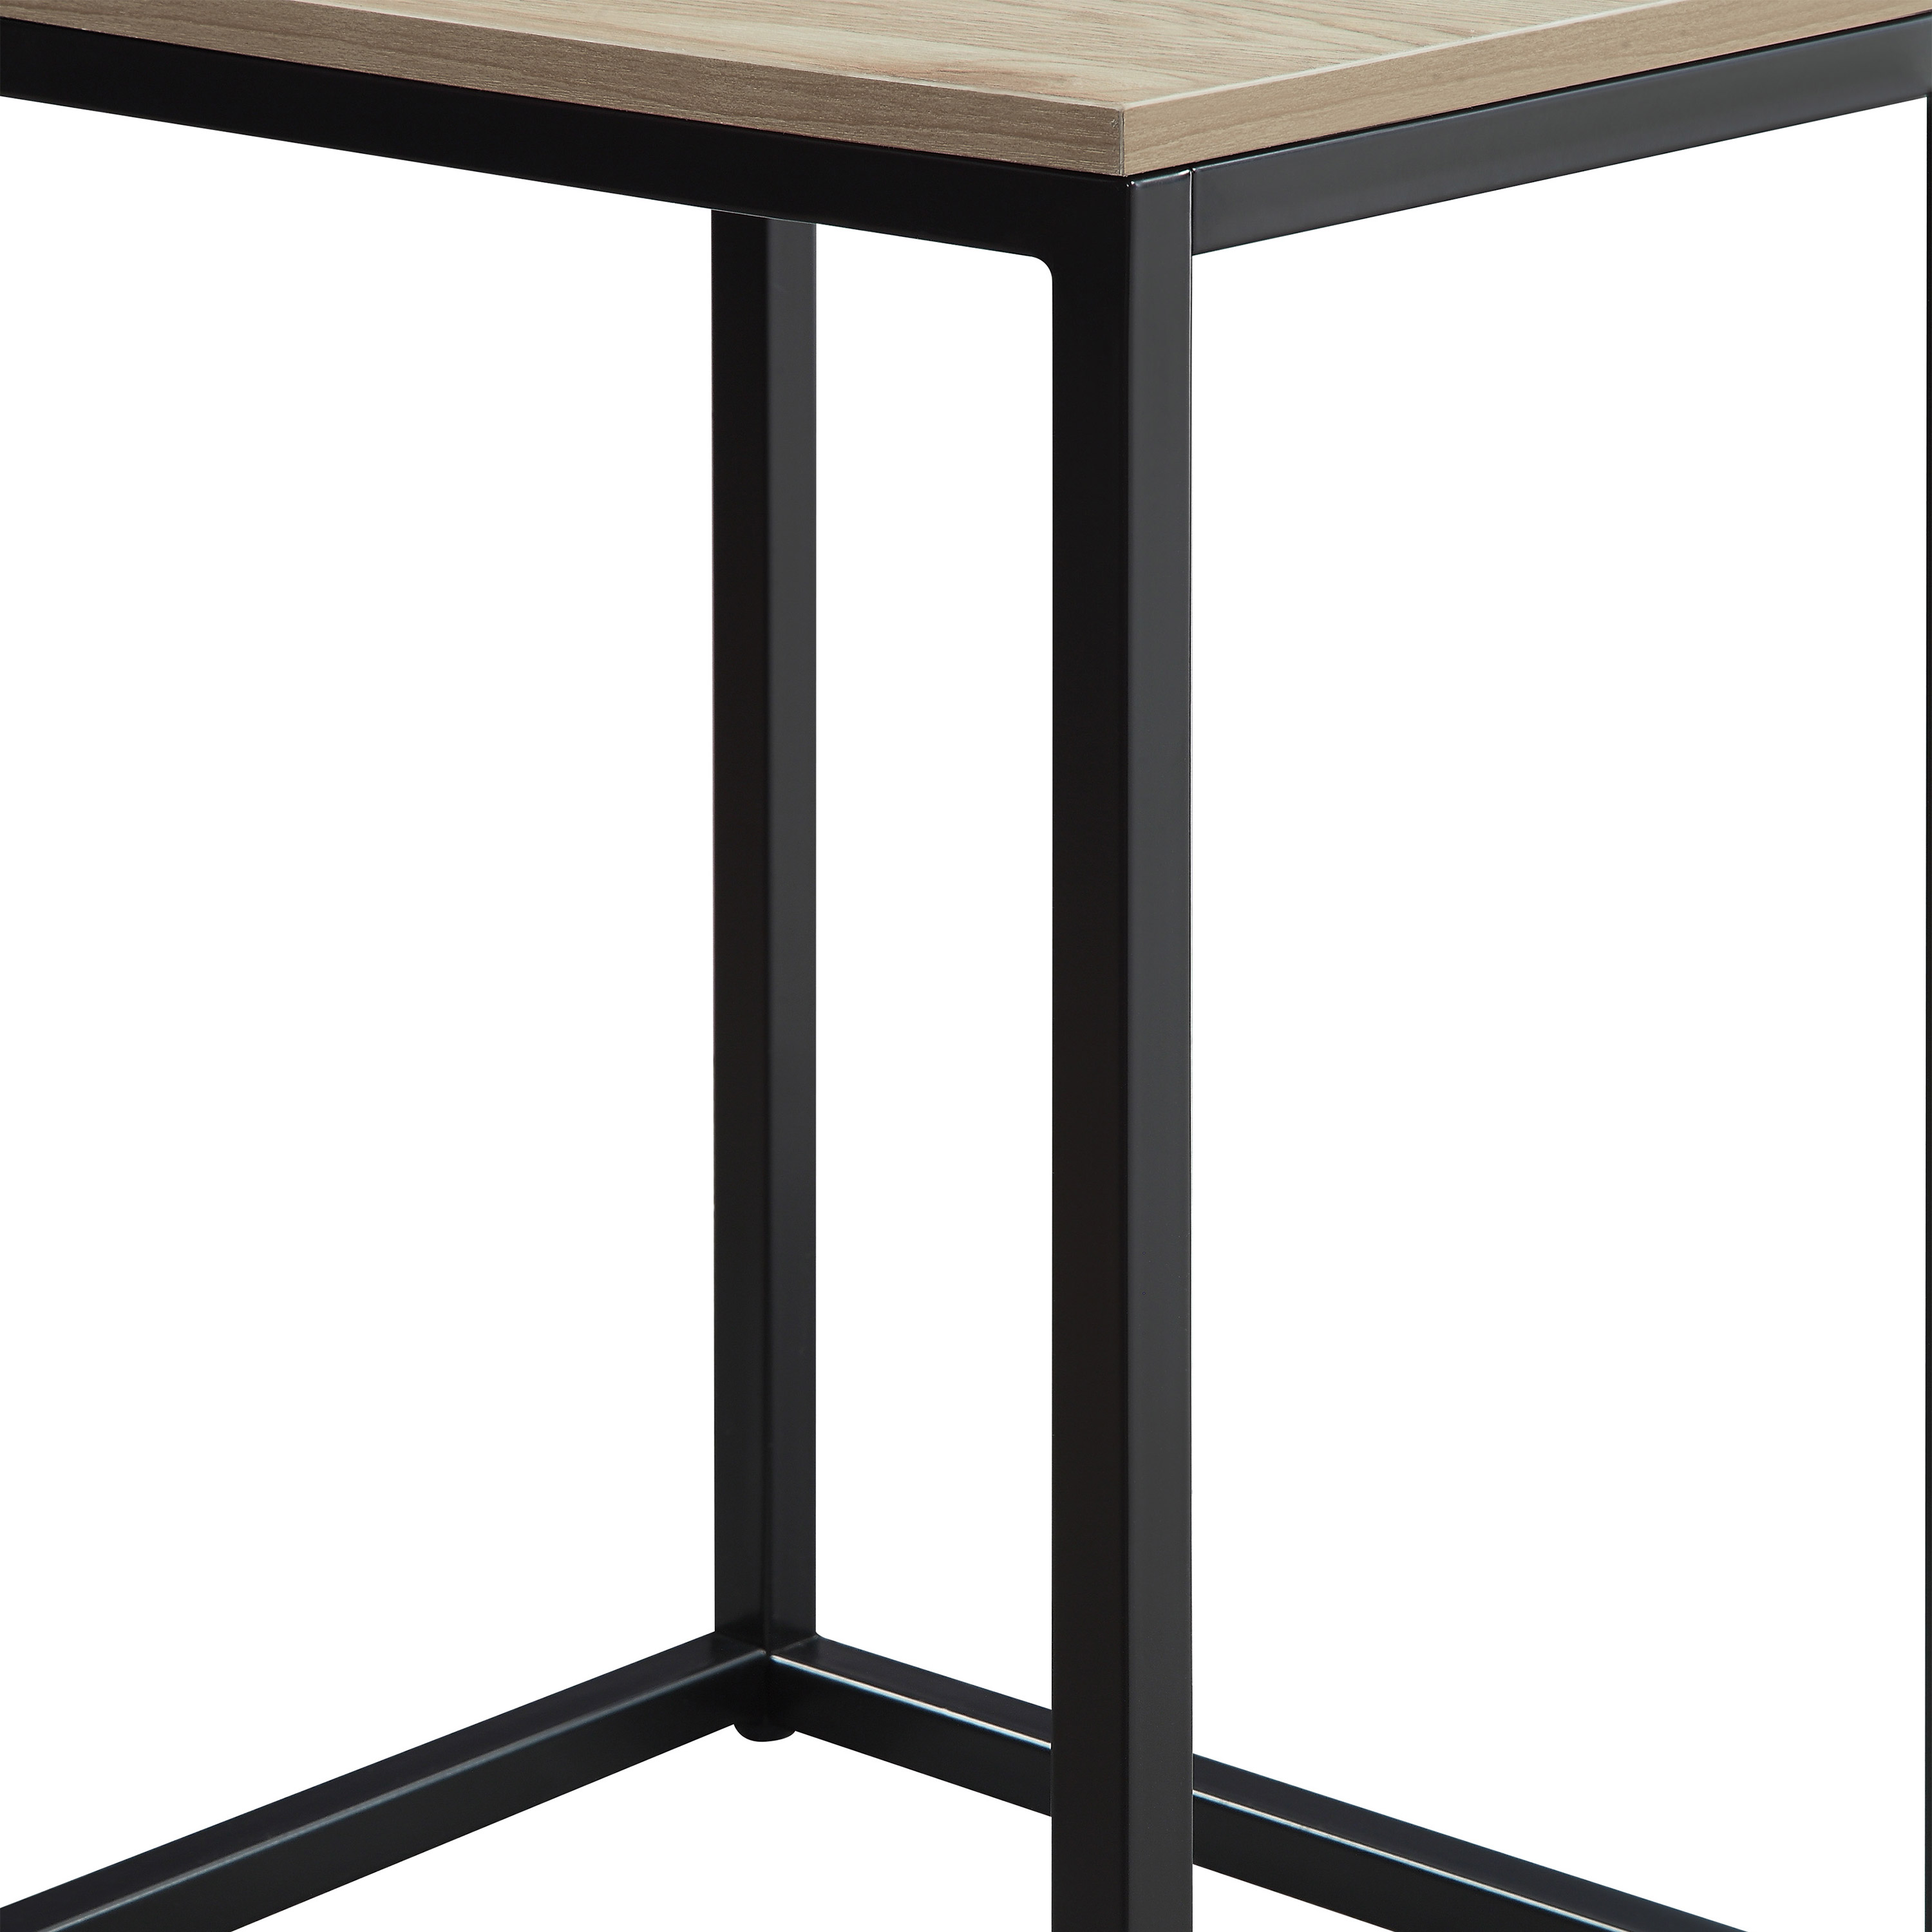 mainstays end table black marble accent grey mirrored bedside target rugs solid oak tables mirror side living room keter drinks cooler media console furniture pottery lamps dining